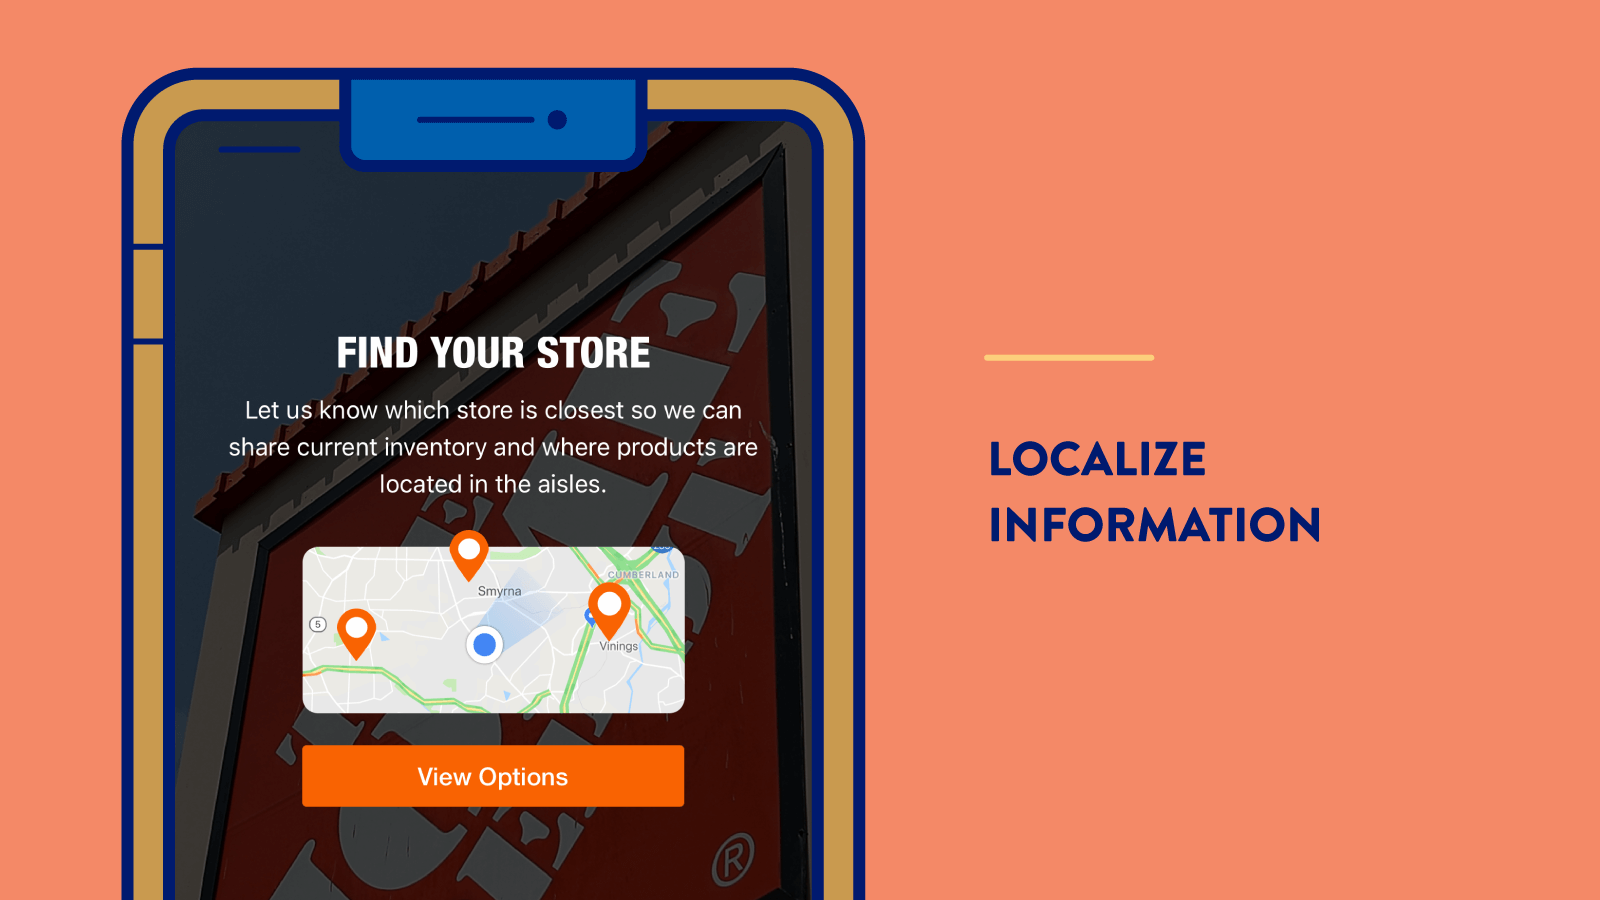 Personalization tip: Localize Information